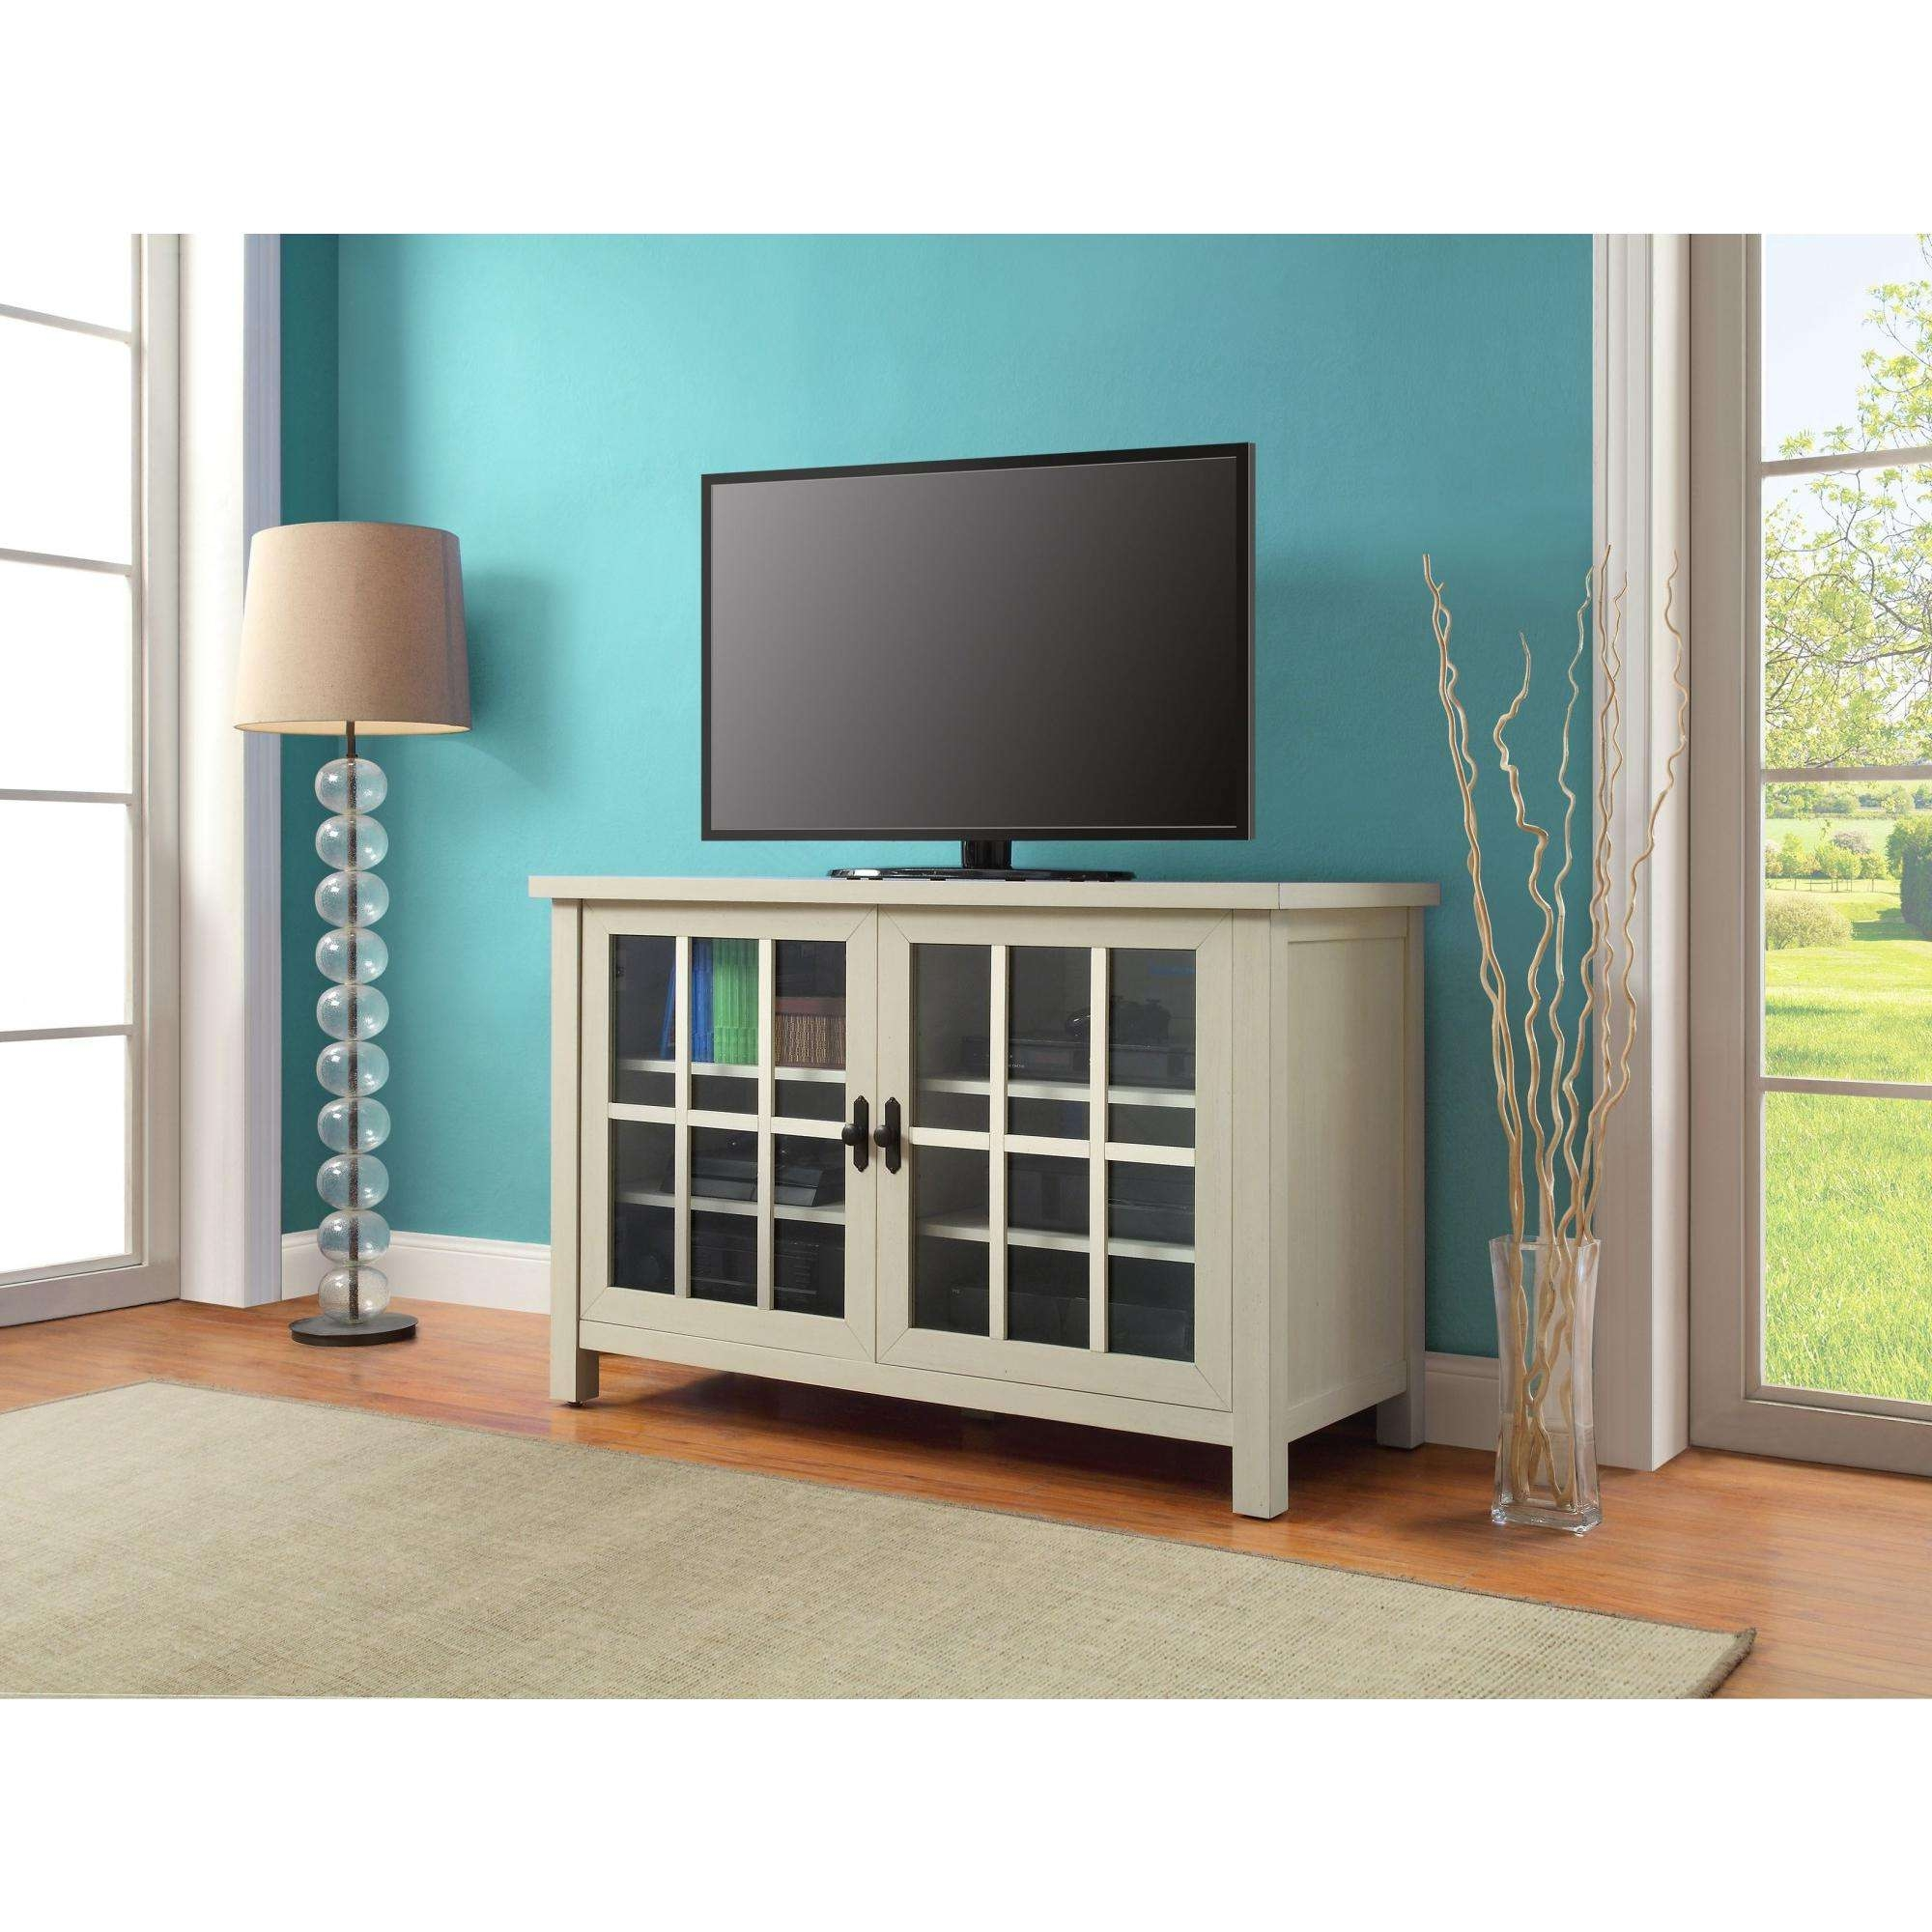 Better Homes And Gardens Oxford Square Tv Console For Tvs Up To 55 Pertaining To Square Tv Stands (View 9 of 15)